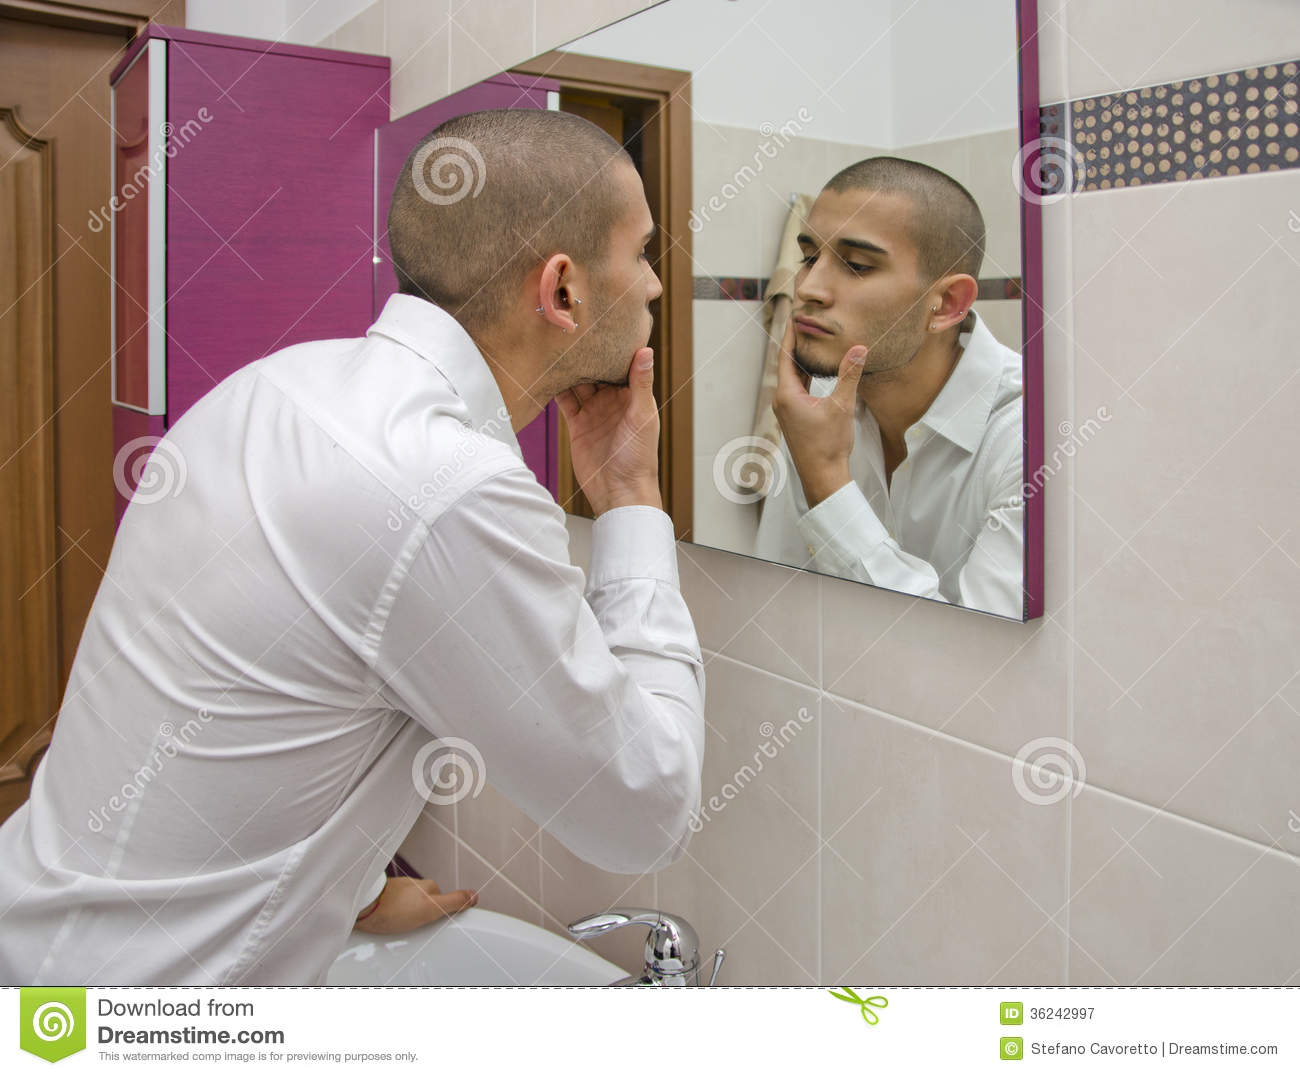 Handsome Young Man Looking At Himself In Bathroom Mirror Royalty Free Stock Photography Image